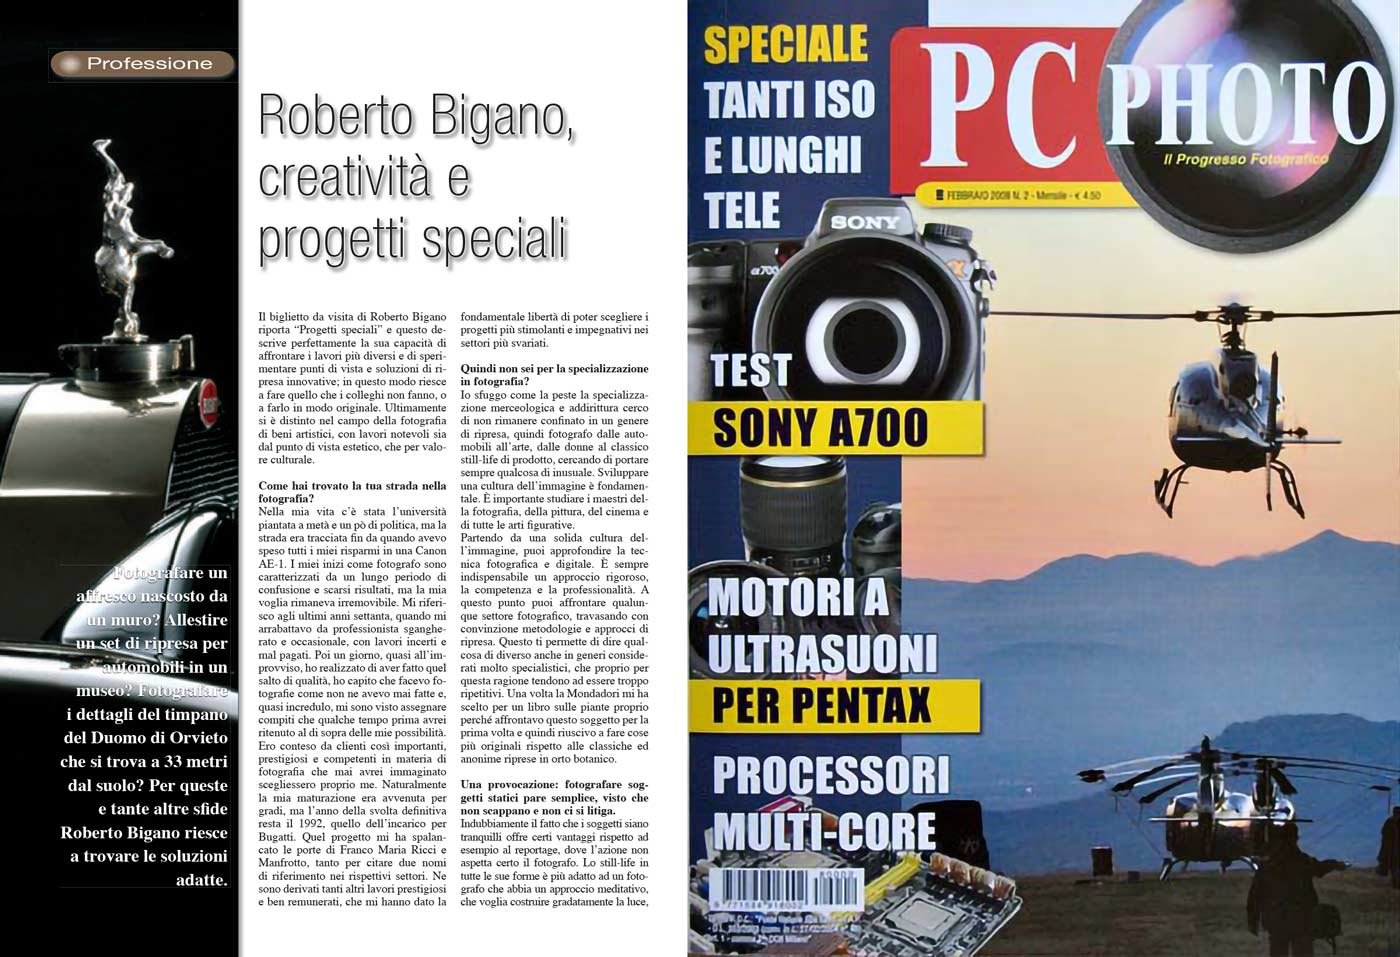 PC Photo About Roberto Bigano